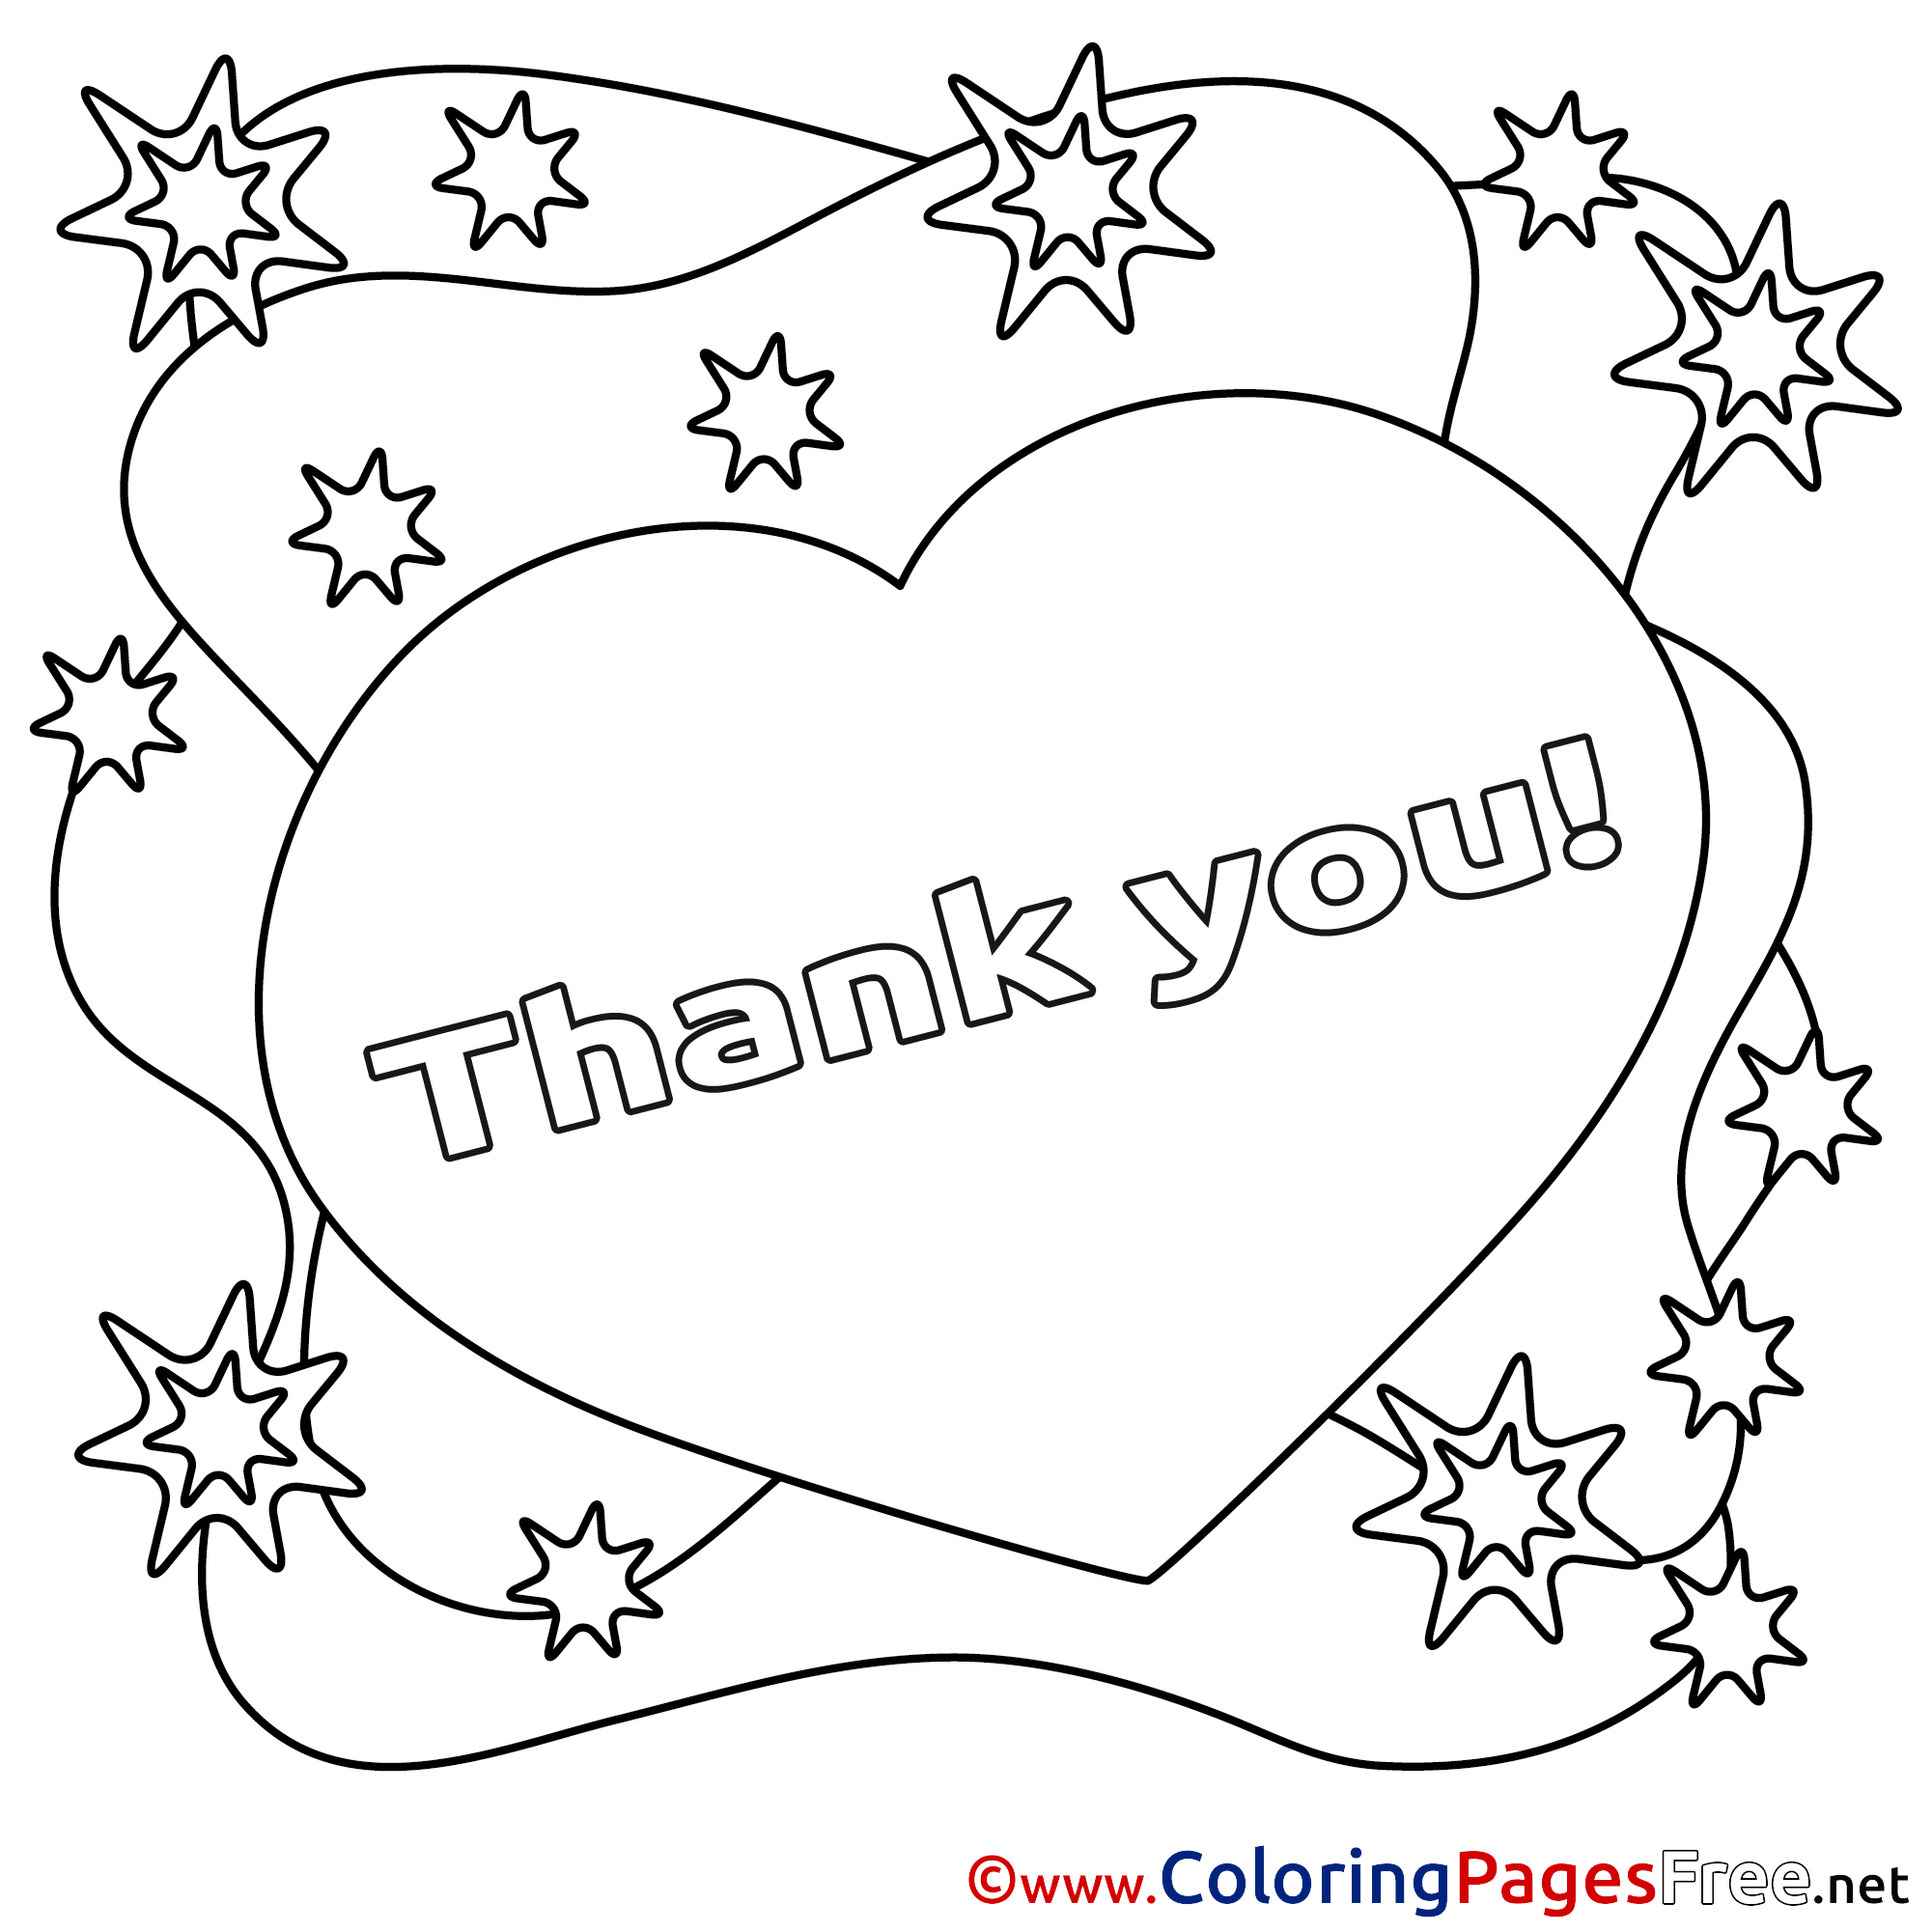 Thank You God Coloring Pages At Getdrawings Com Free For